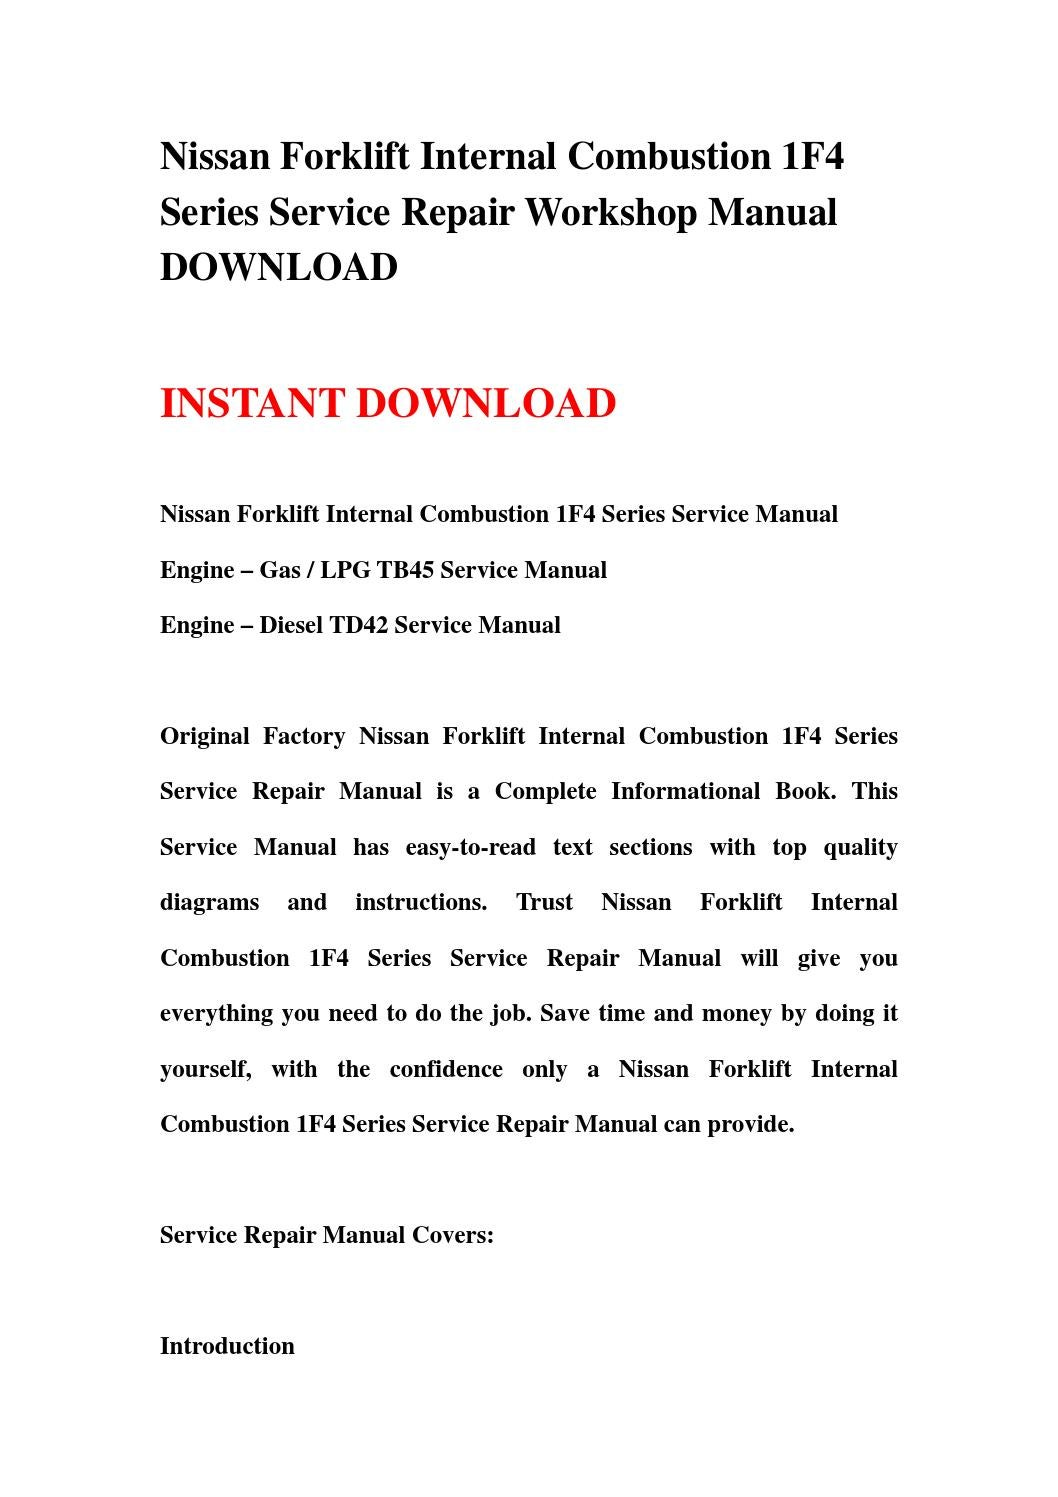 nissan forklift internal combustion 1f4 series service repair workshop manual download by nissan patrol service manual nissan patrol service manual